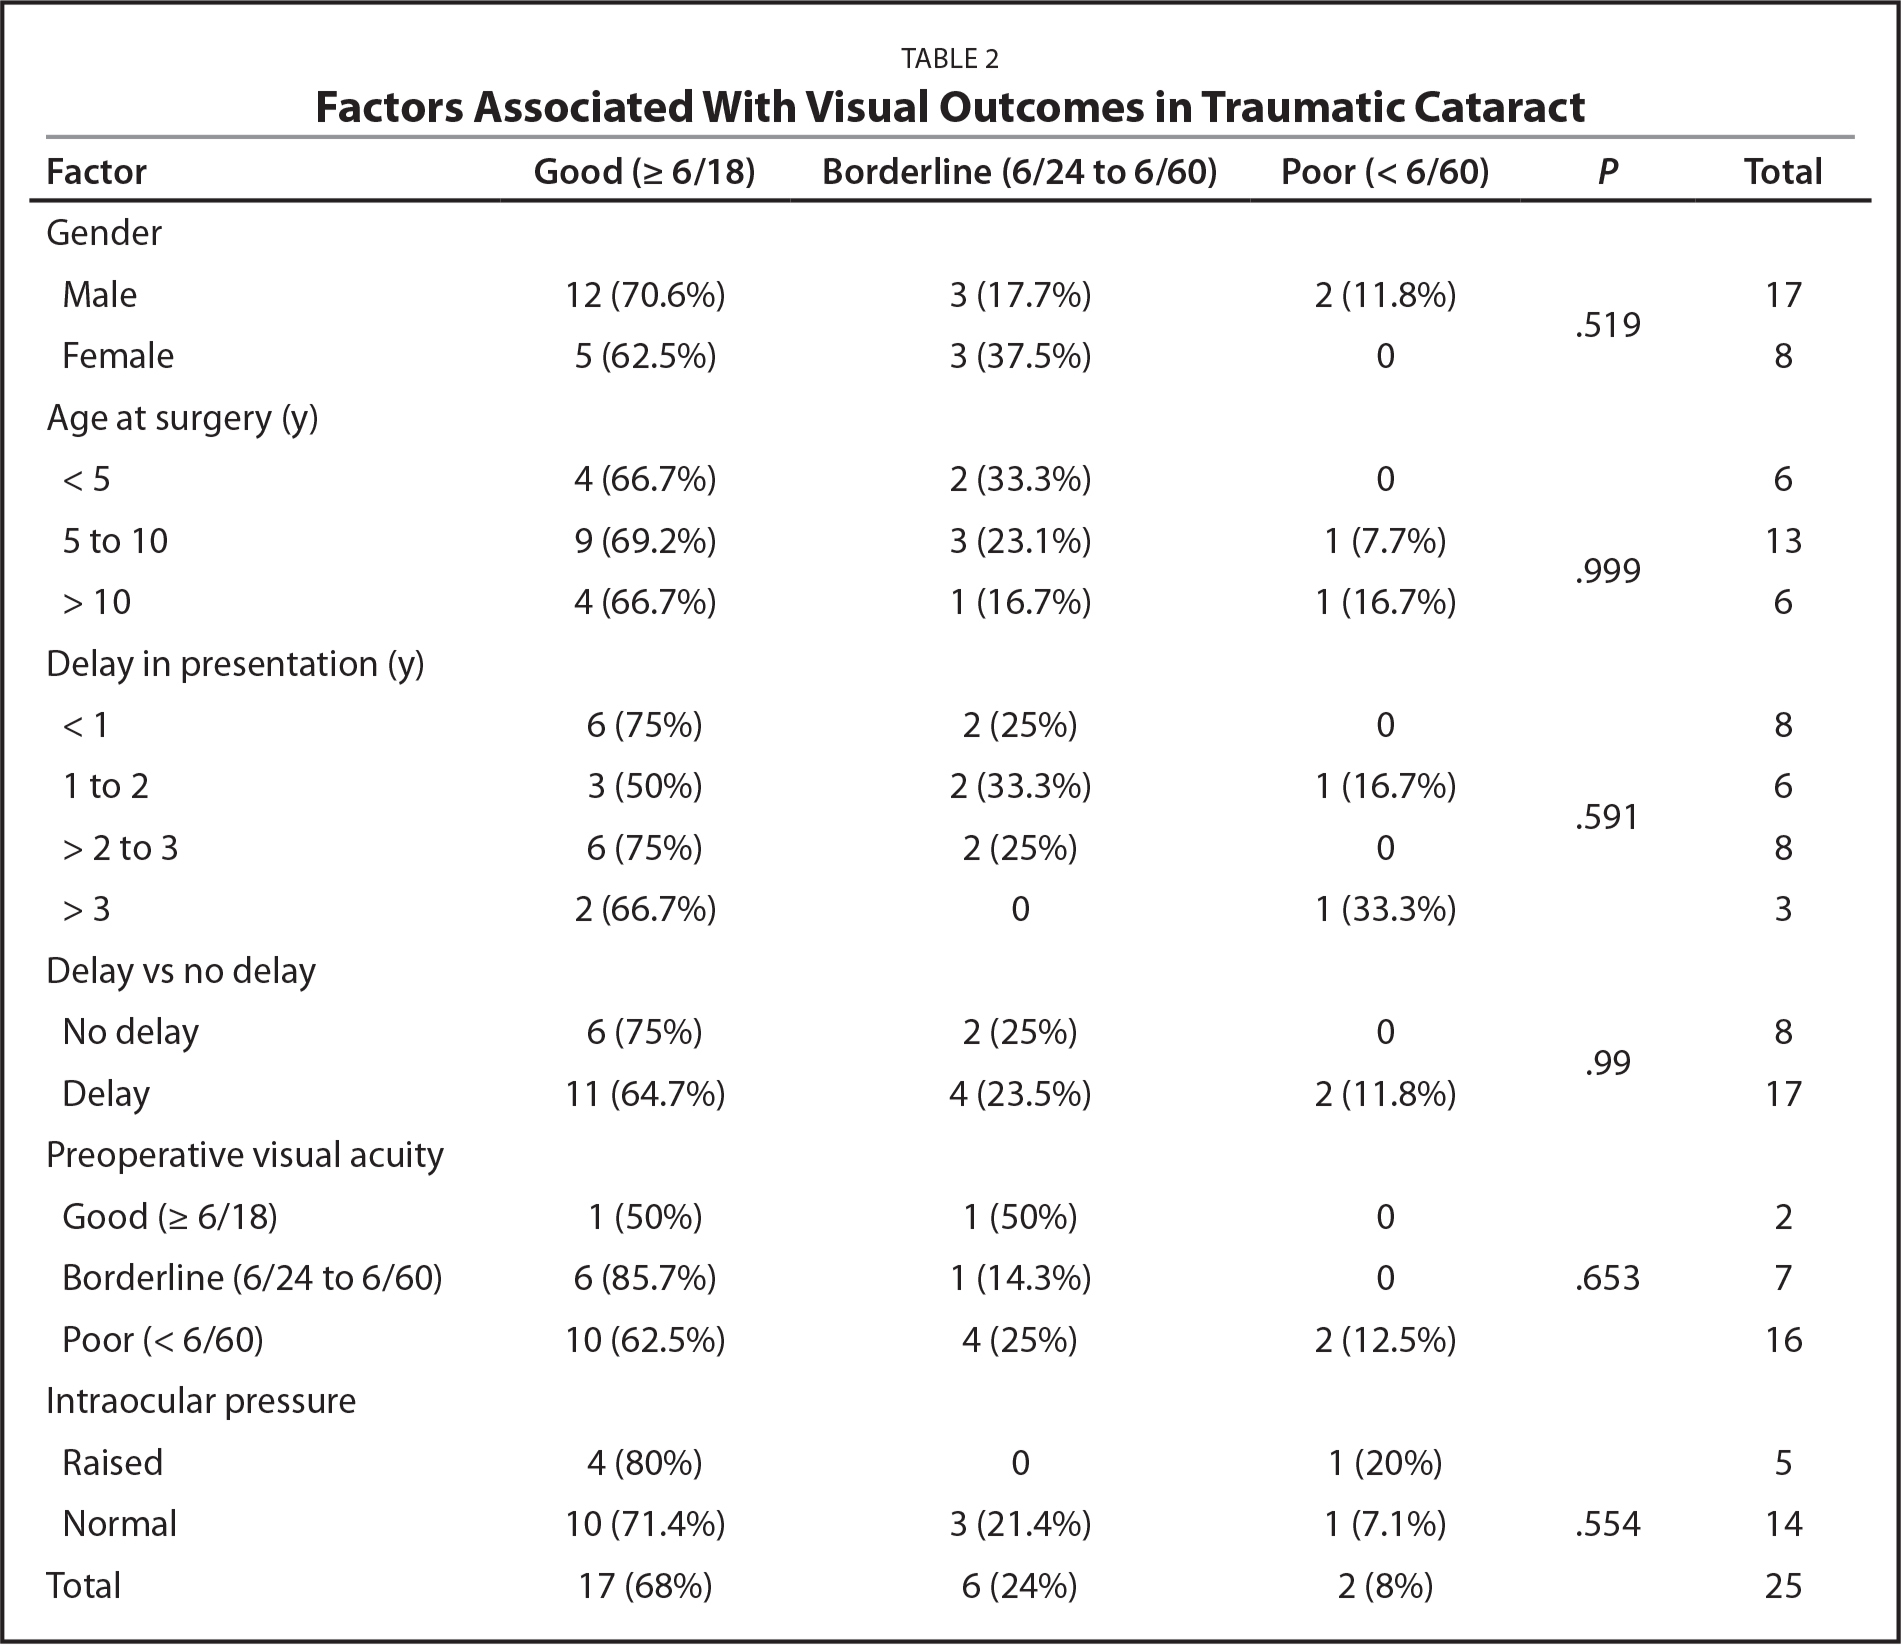 Factors Associated With Visual Outcomes in Traumatic Cataract